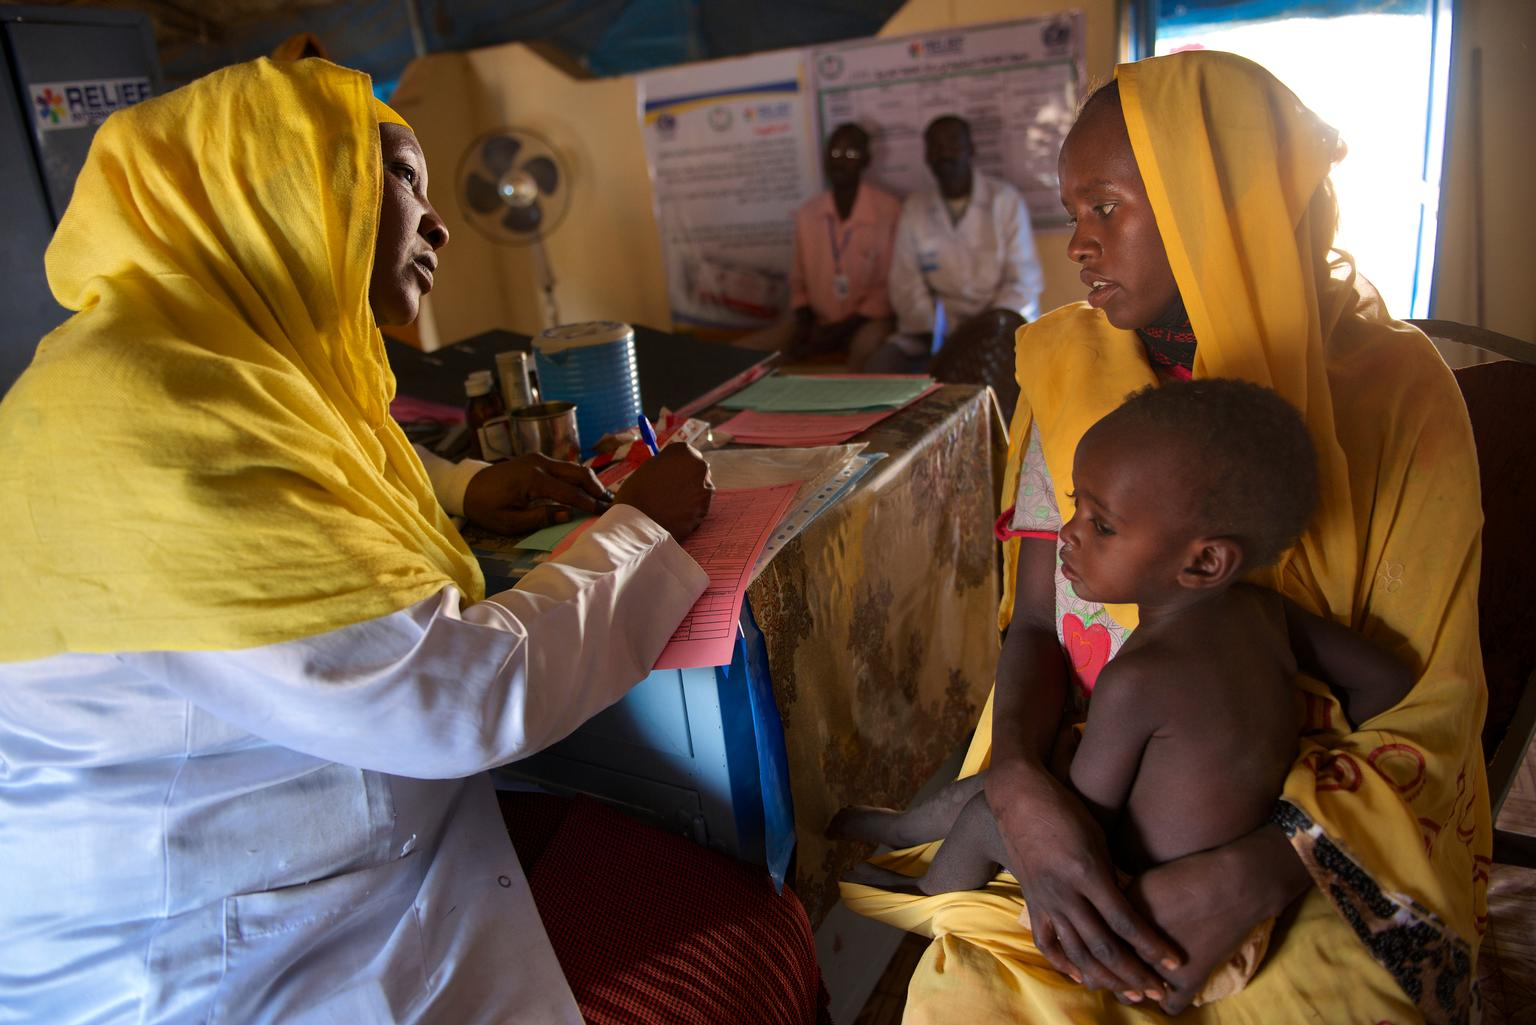 While Bakhita holds her child, a Medical Assistant advises her on how to look after the child's nutrition and growth. A regular nutrition assessment indicated that her child is moderately malnourished.